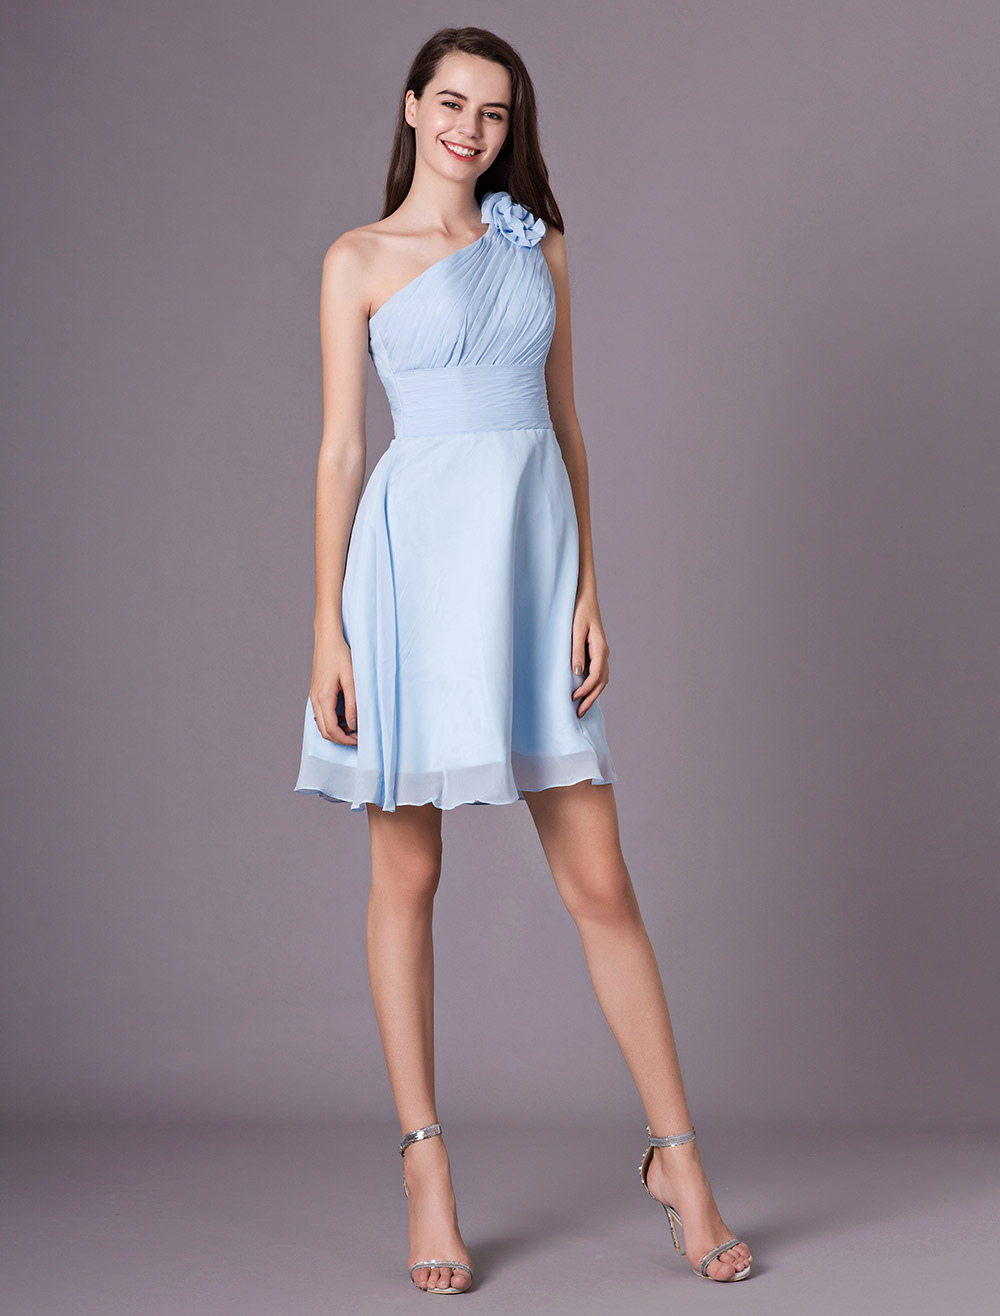 1b43491ed ... Chiffon Bridesmaid Dress Baby blue One Shoulder Knee Length Flowers  Prom Dress-No.5 ...